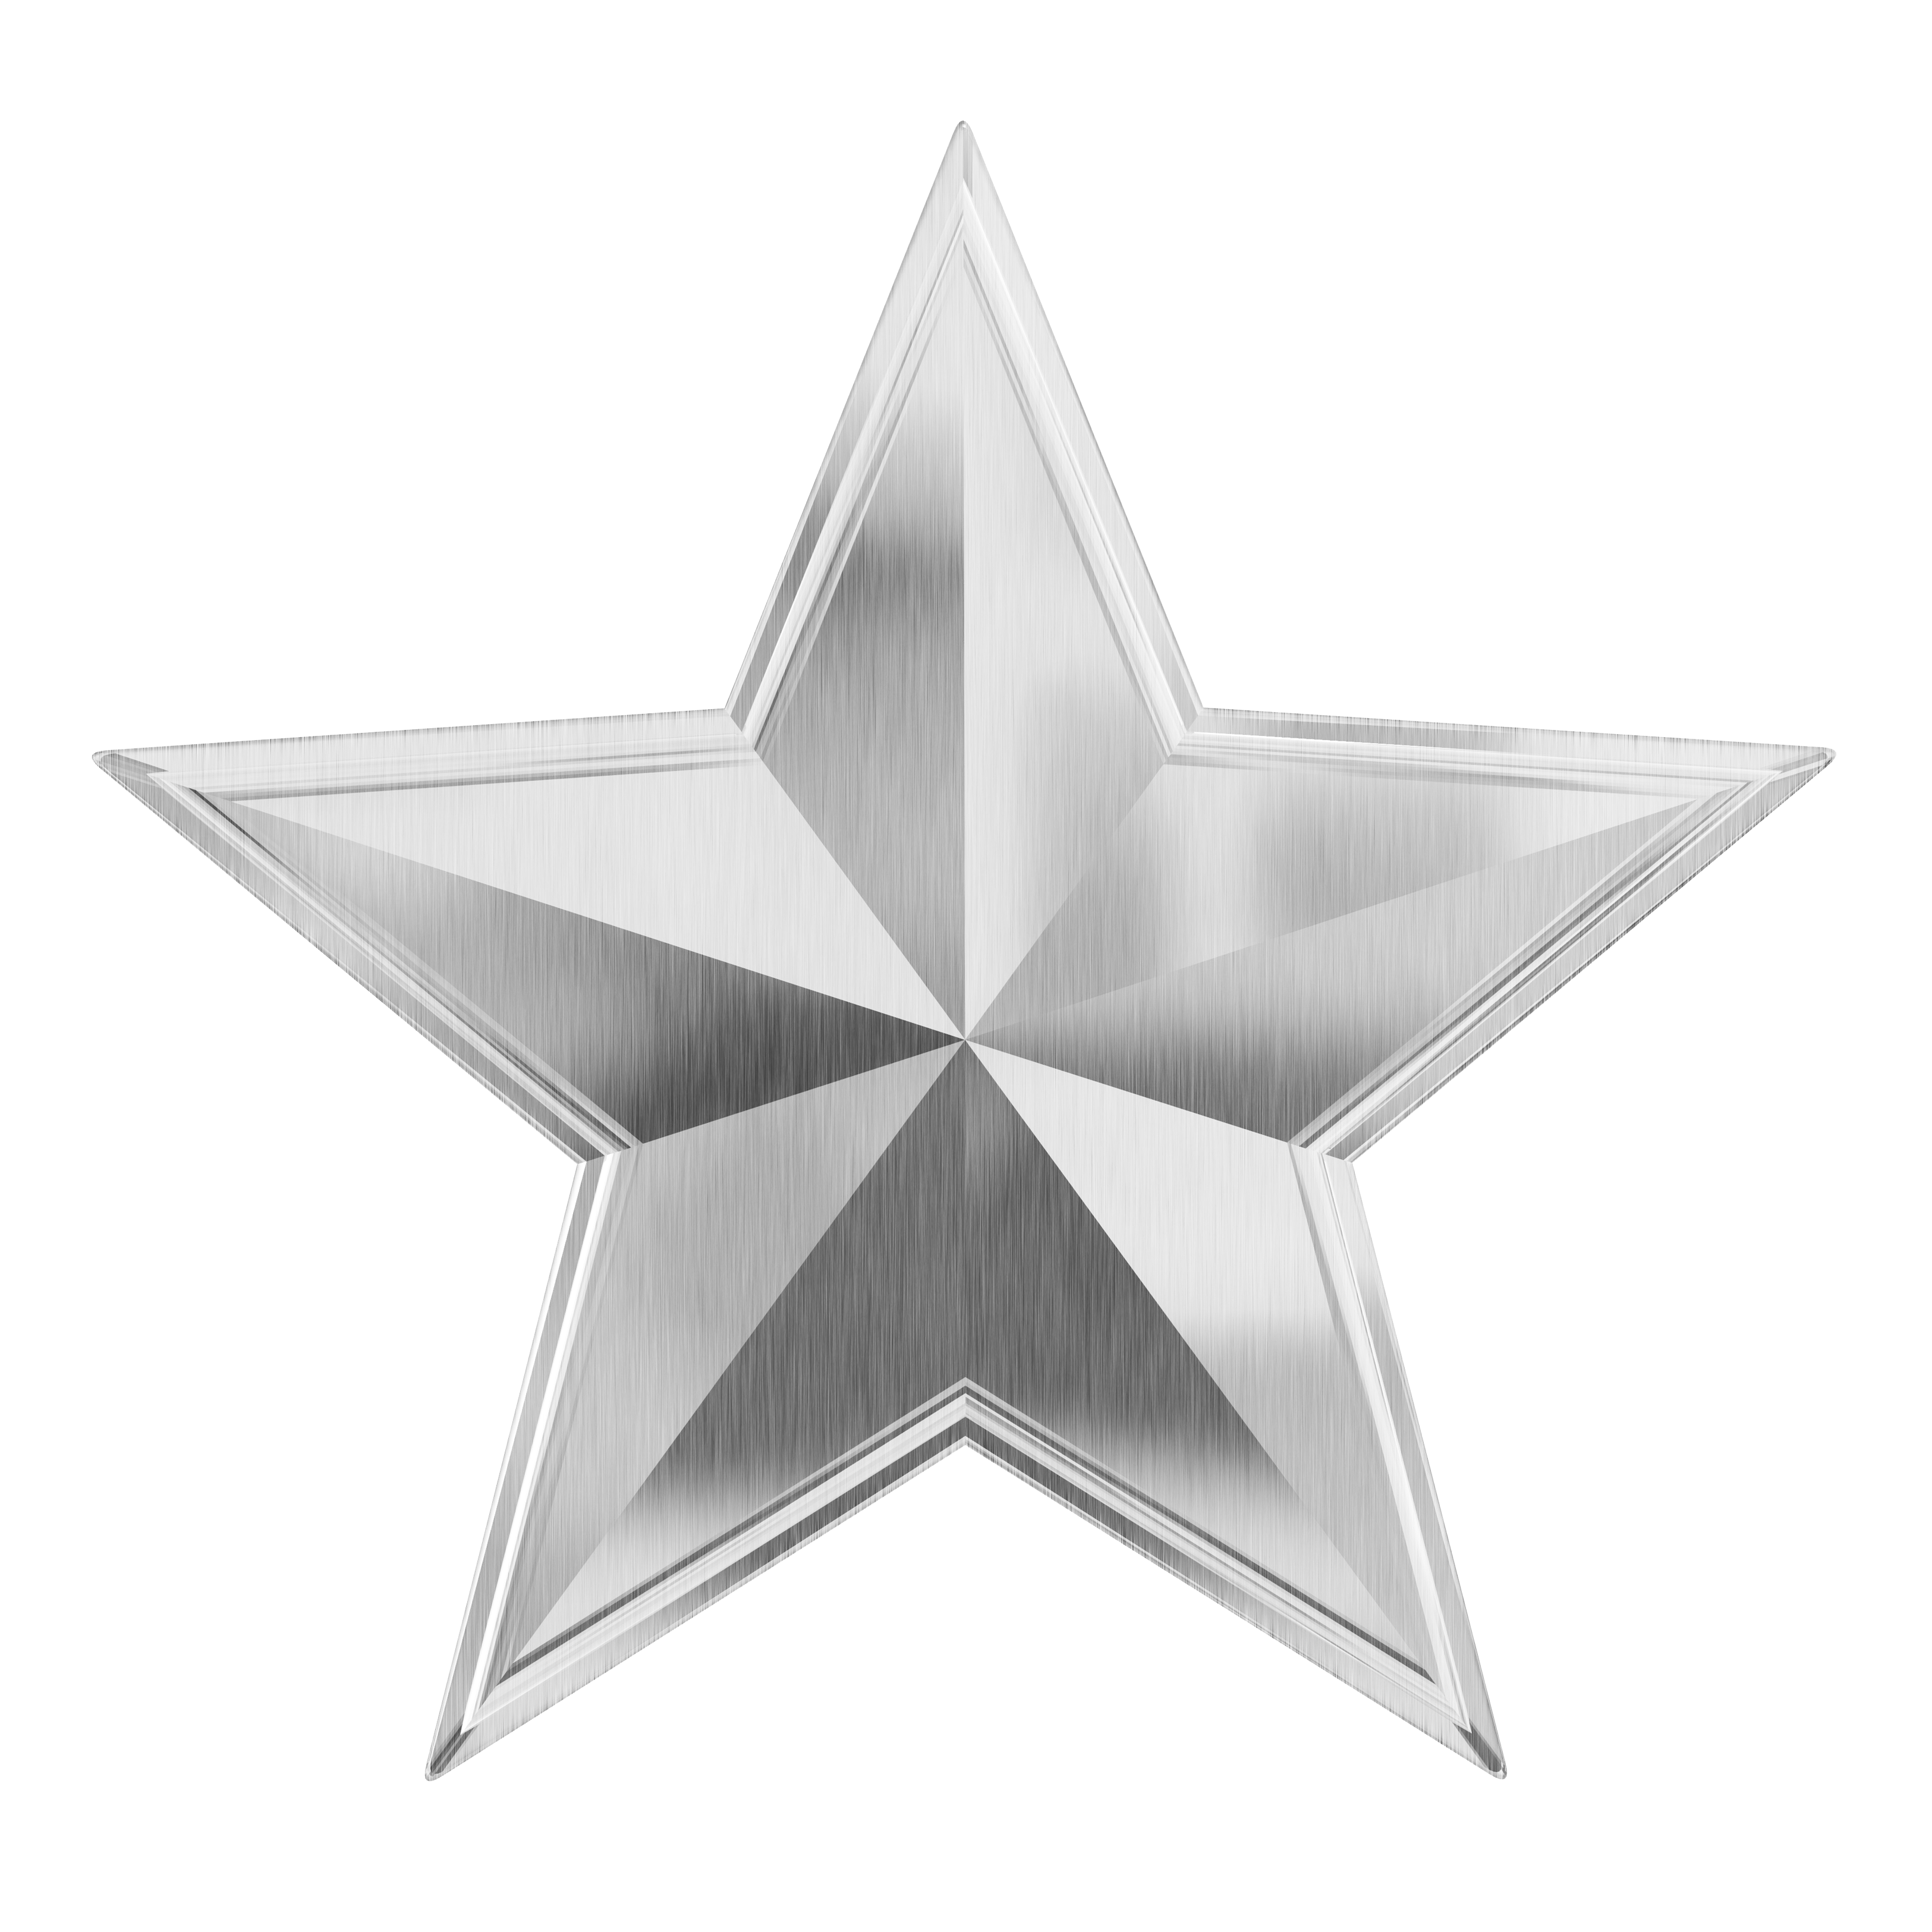 Silver Festive Christmas Star PNG Image